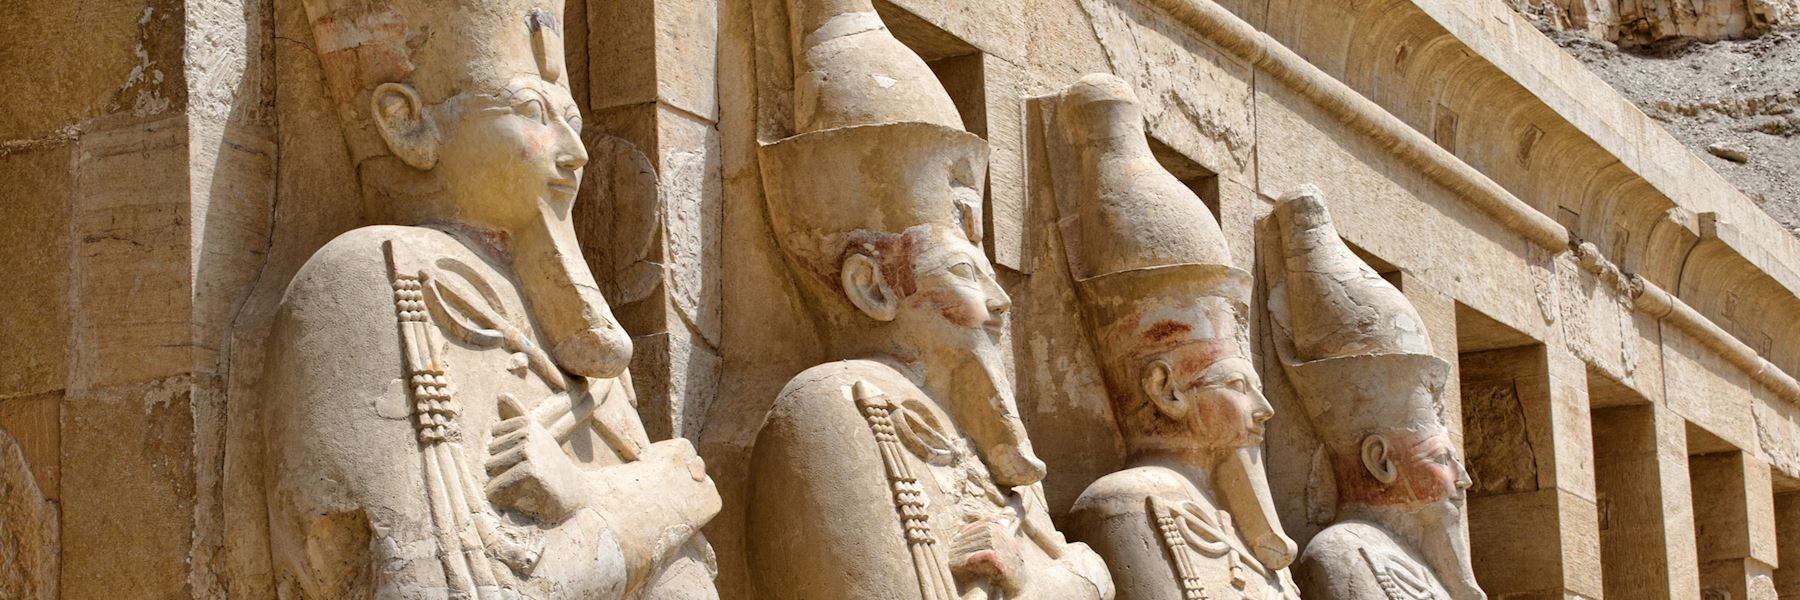 Luxor Vacations Ancient Egyptian Monument Tours Audley Travel